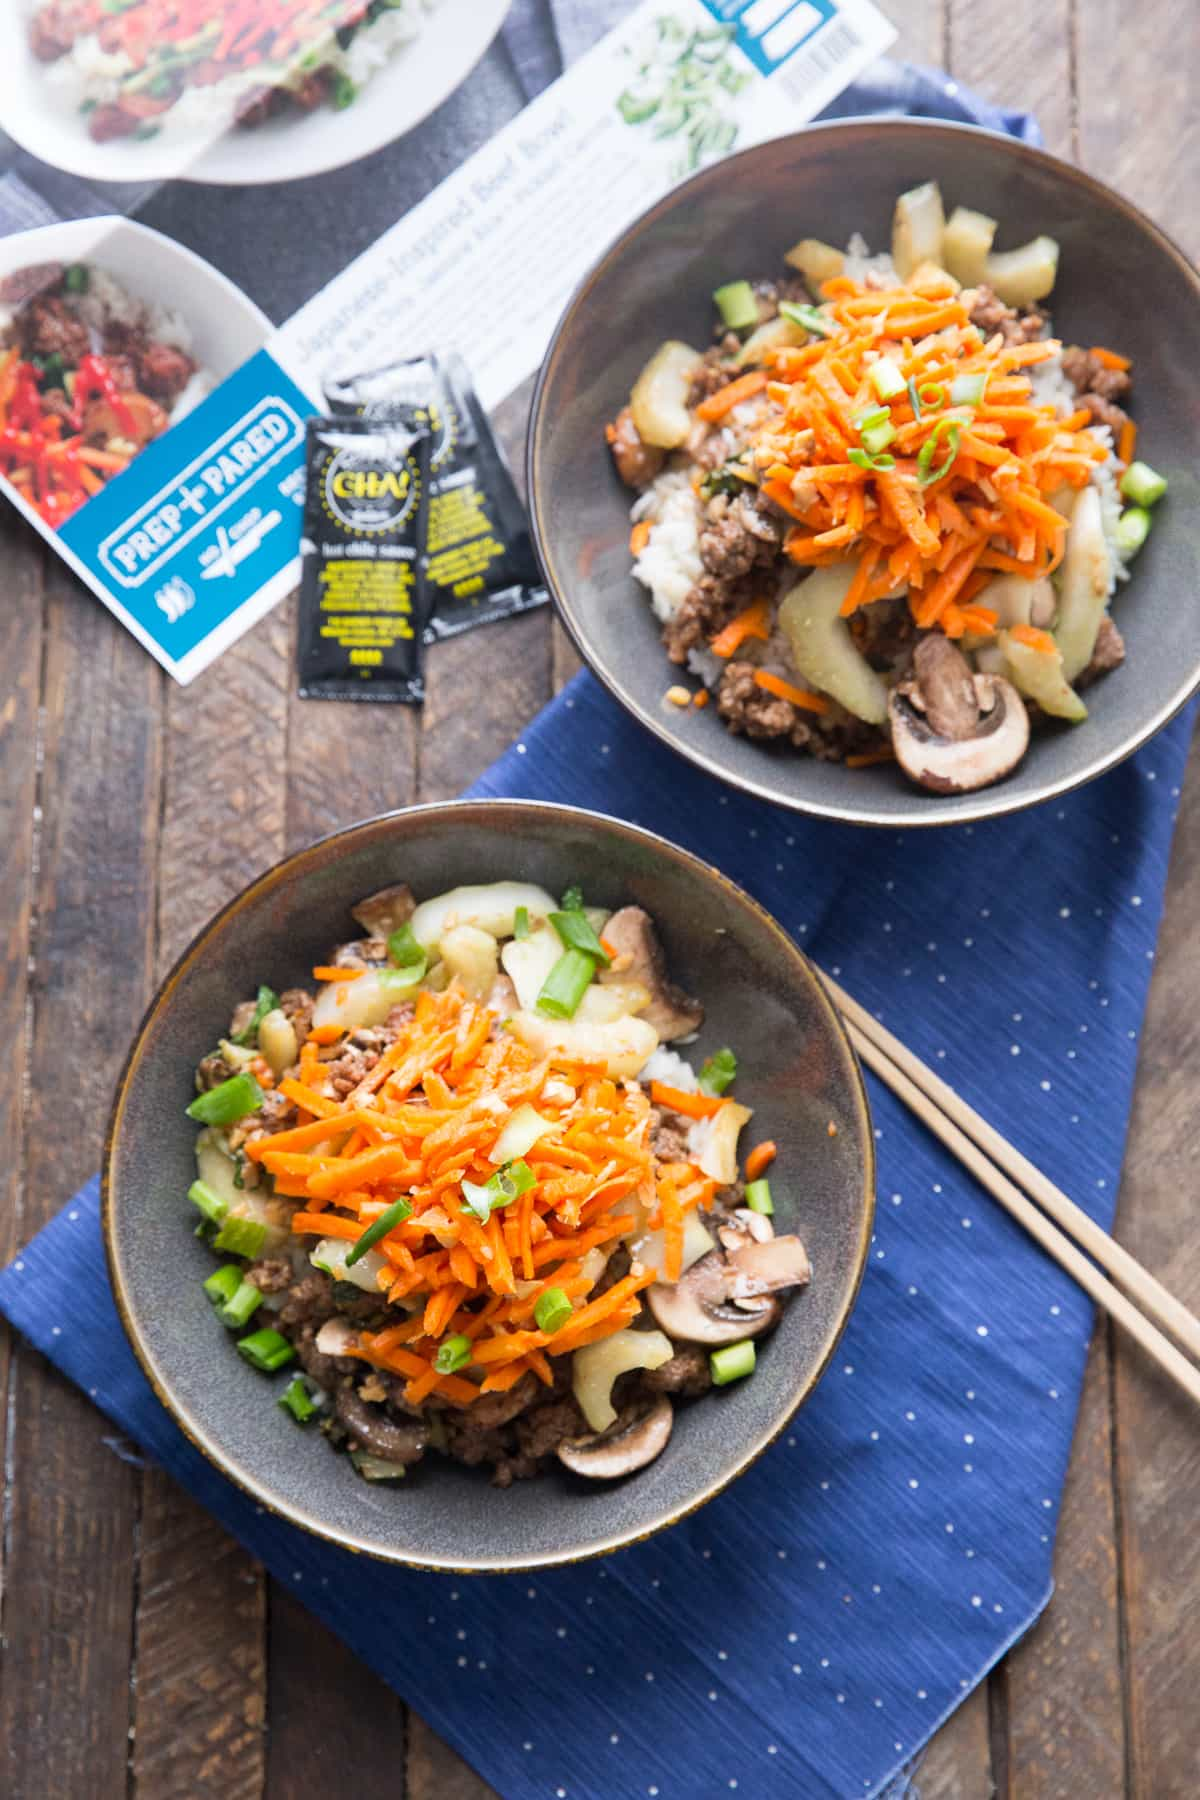 Thees easy beef bowls are the perfect date night meal! Prep and Pared meal kits make it so simple!